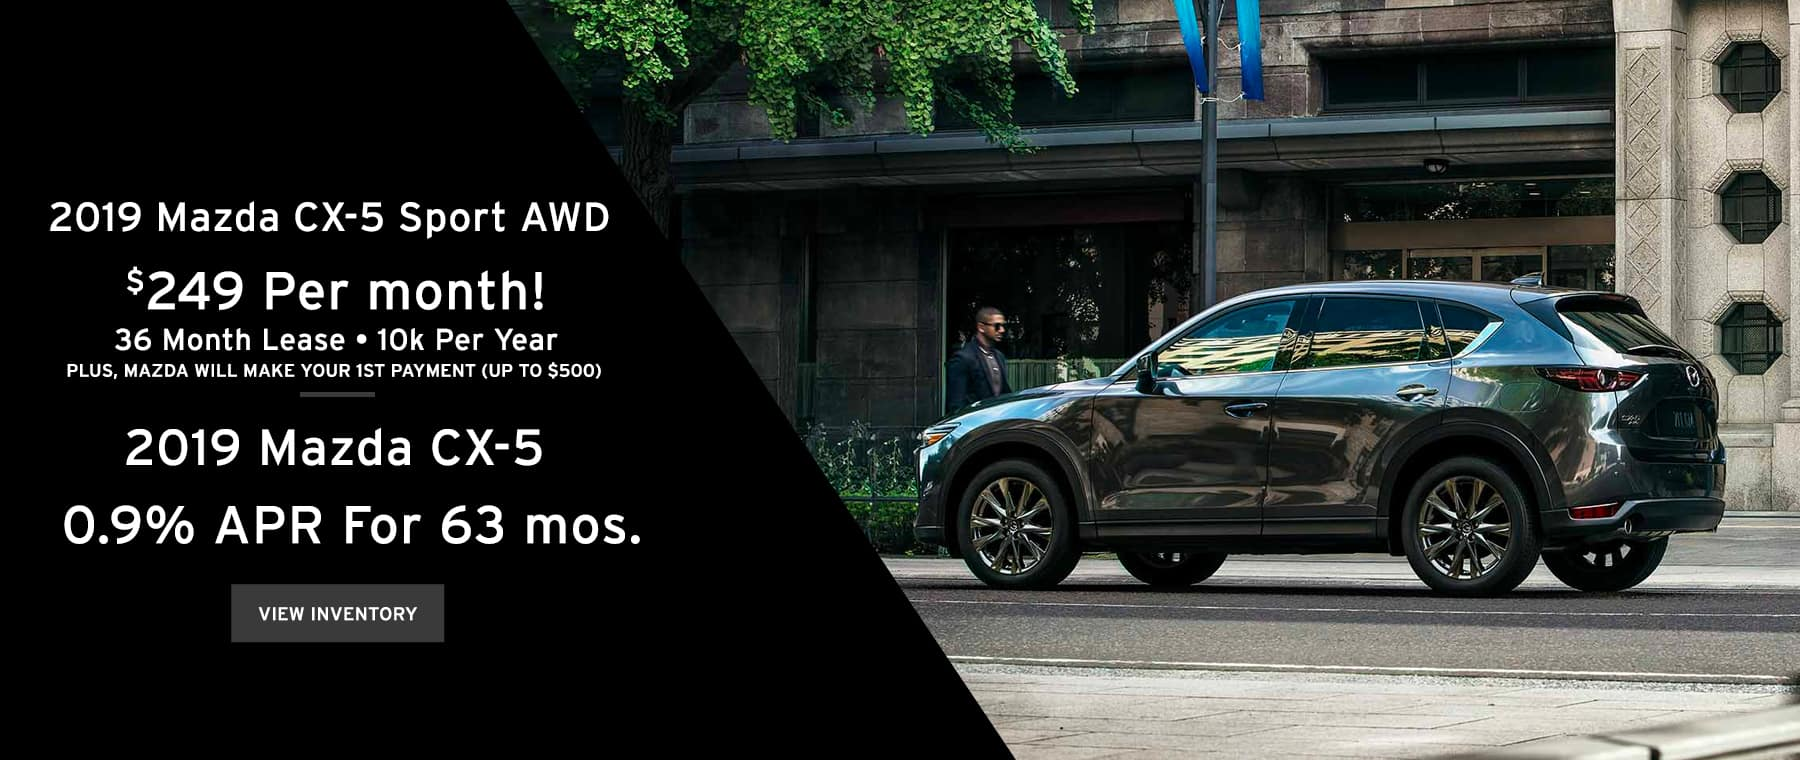 New Mazda CX-5 Offer At Cooley Mazda